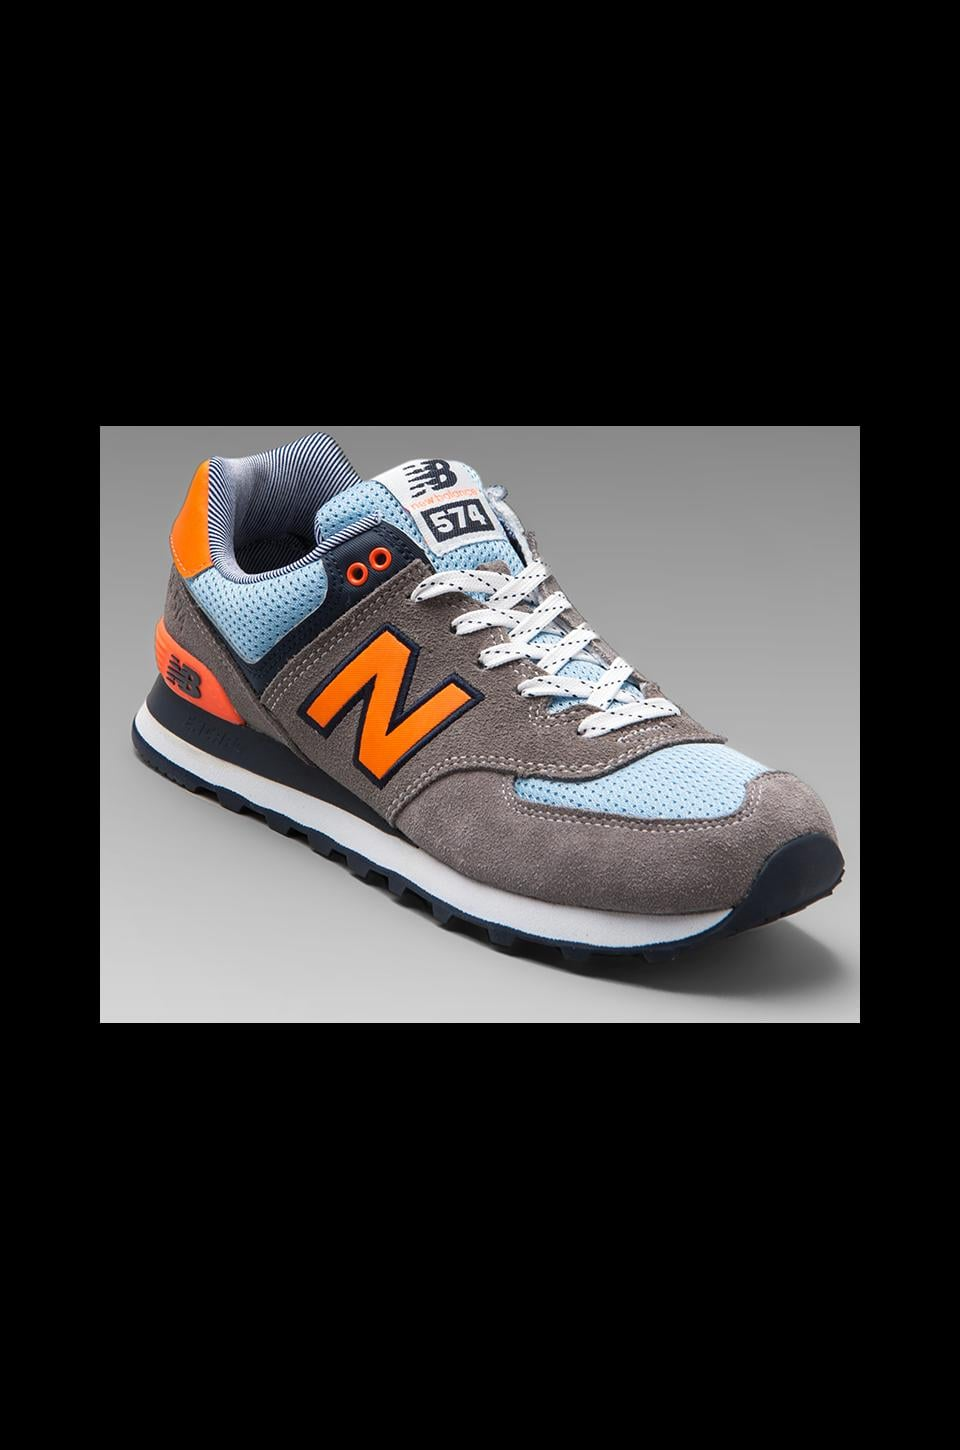 New Balance Yacht Club ML574 in Grey/Orange